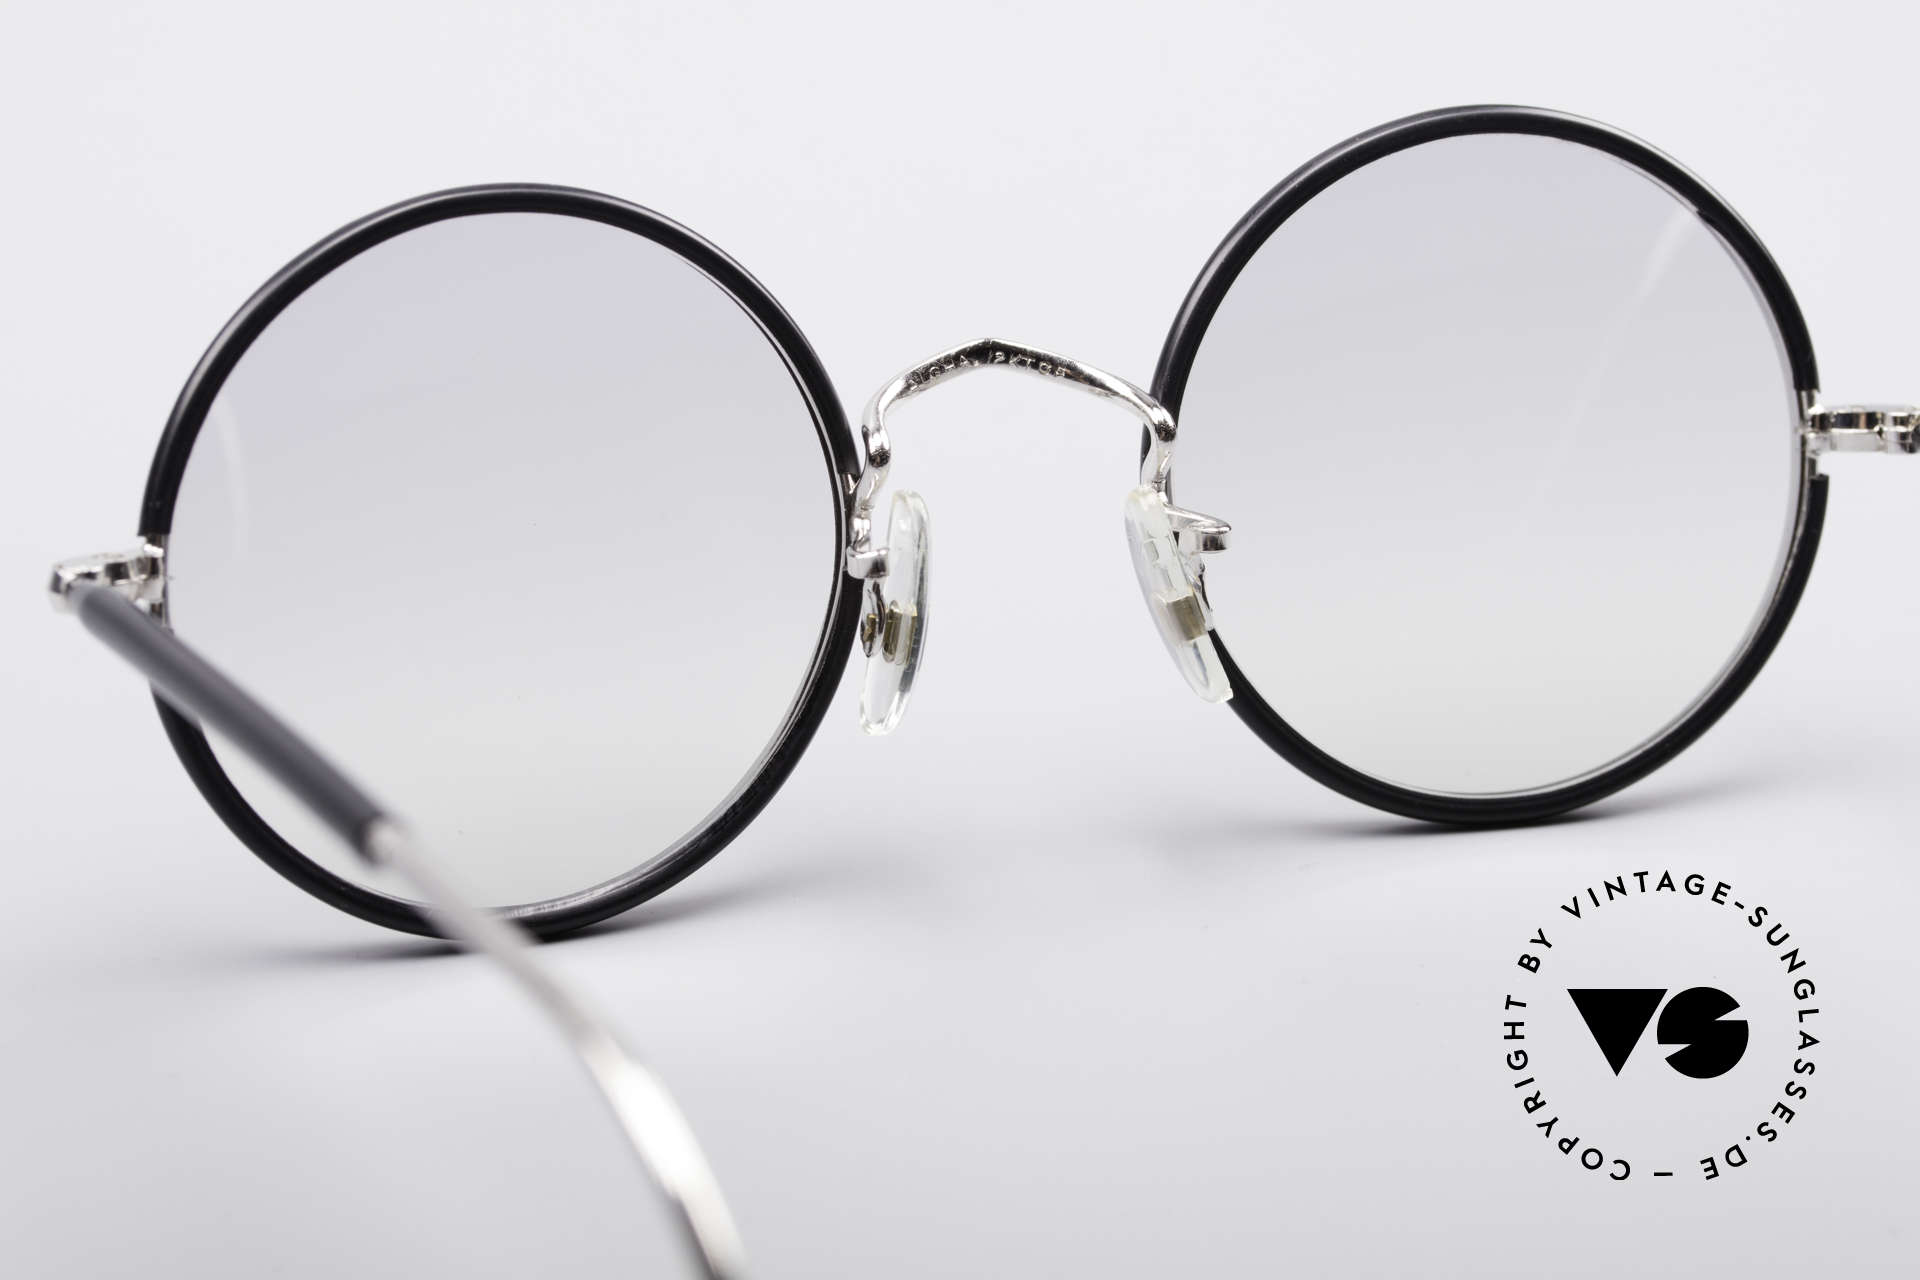 Savile Row Round 44/20 Harry Potter Glasses, unworn rarity, SMALL size 44/20, light tinted lenses, Made for Men